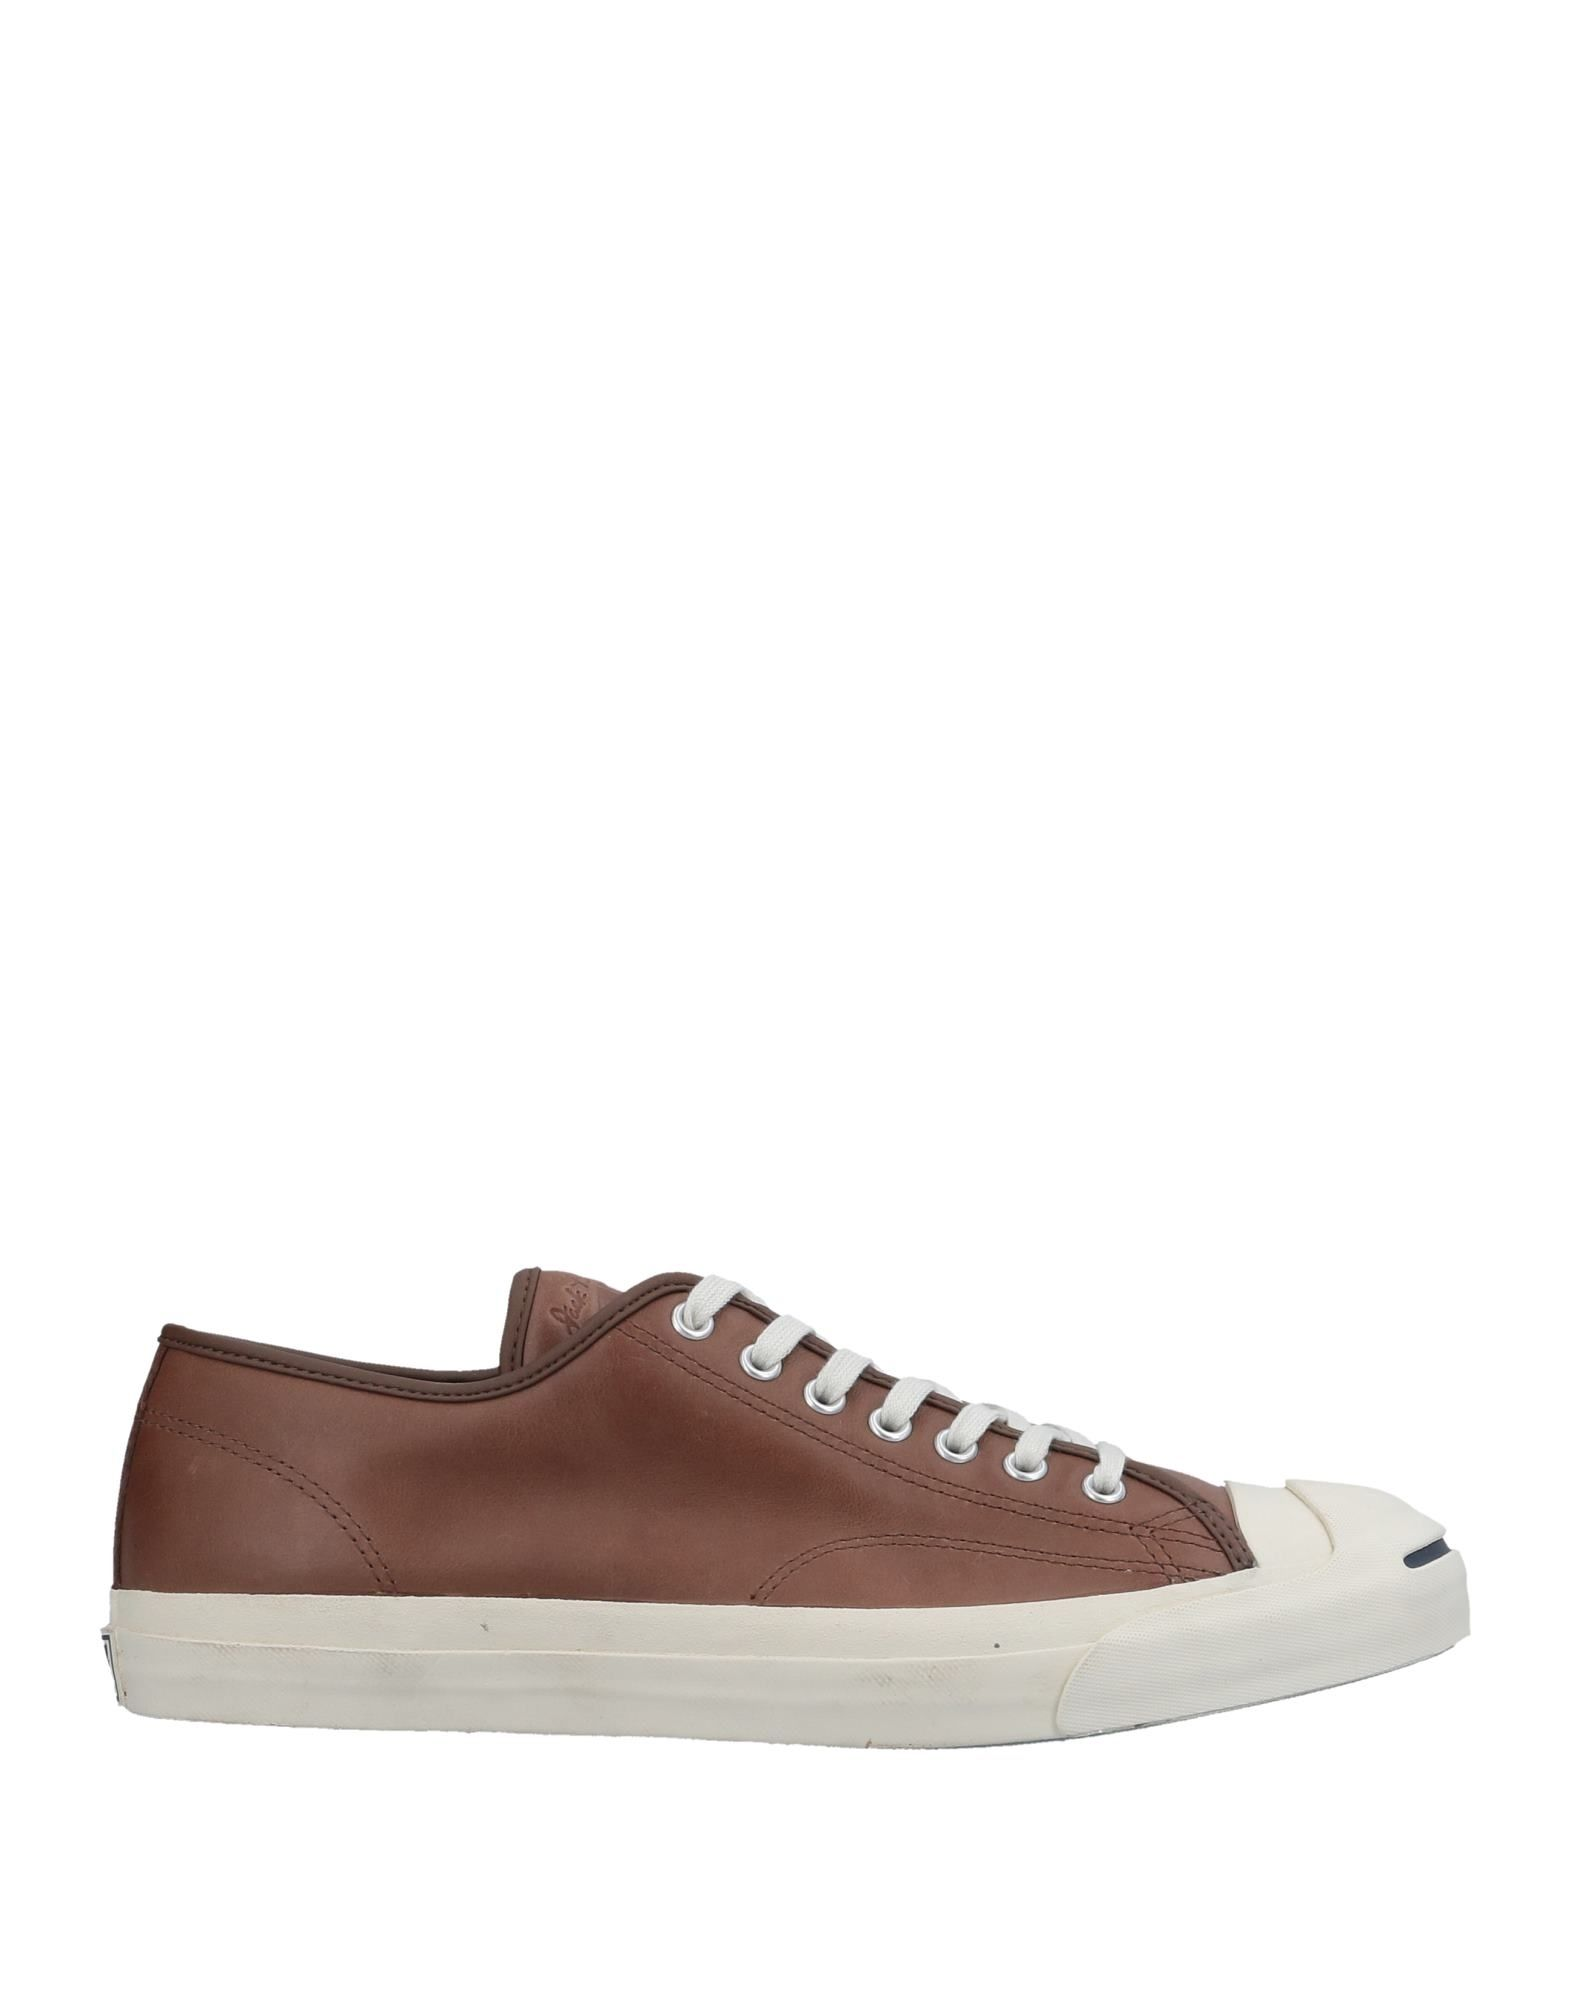 Sneakers - Converse Jack Purcell Uomo - Sneakers 11510017HK 3a17bf